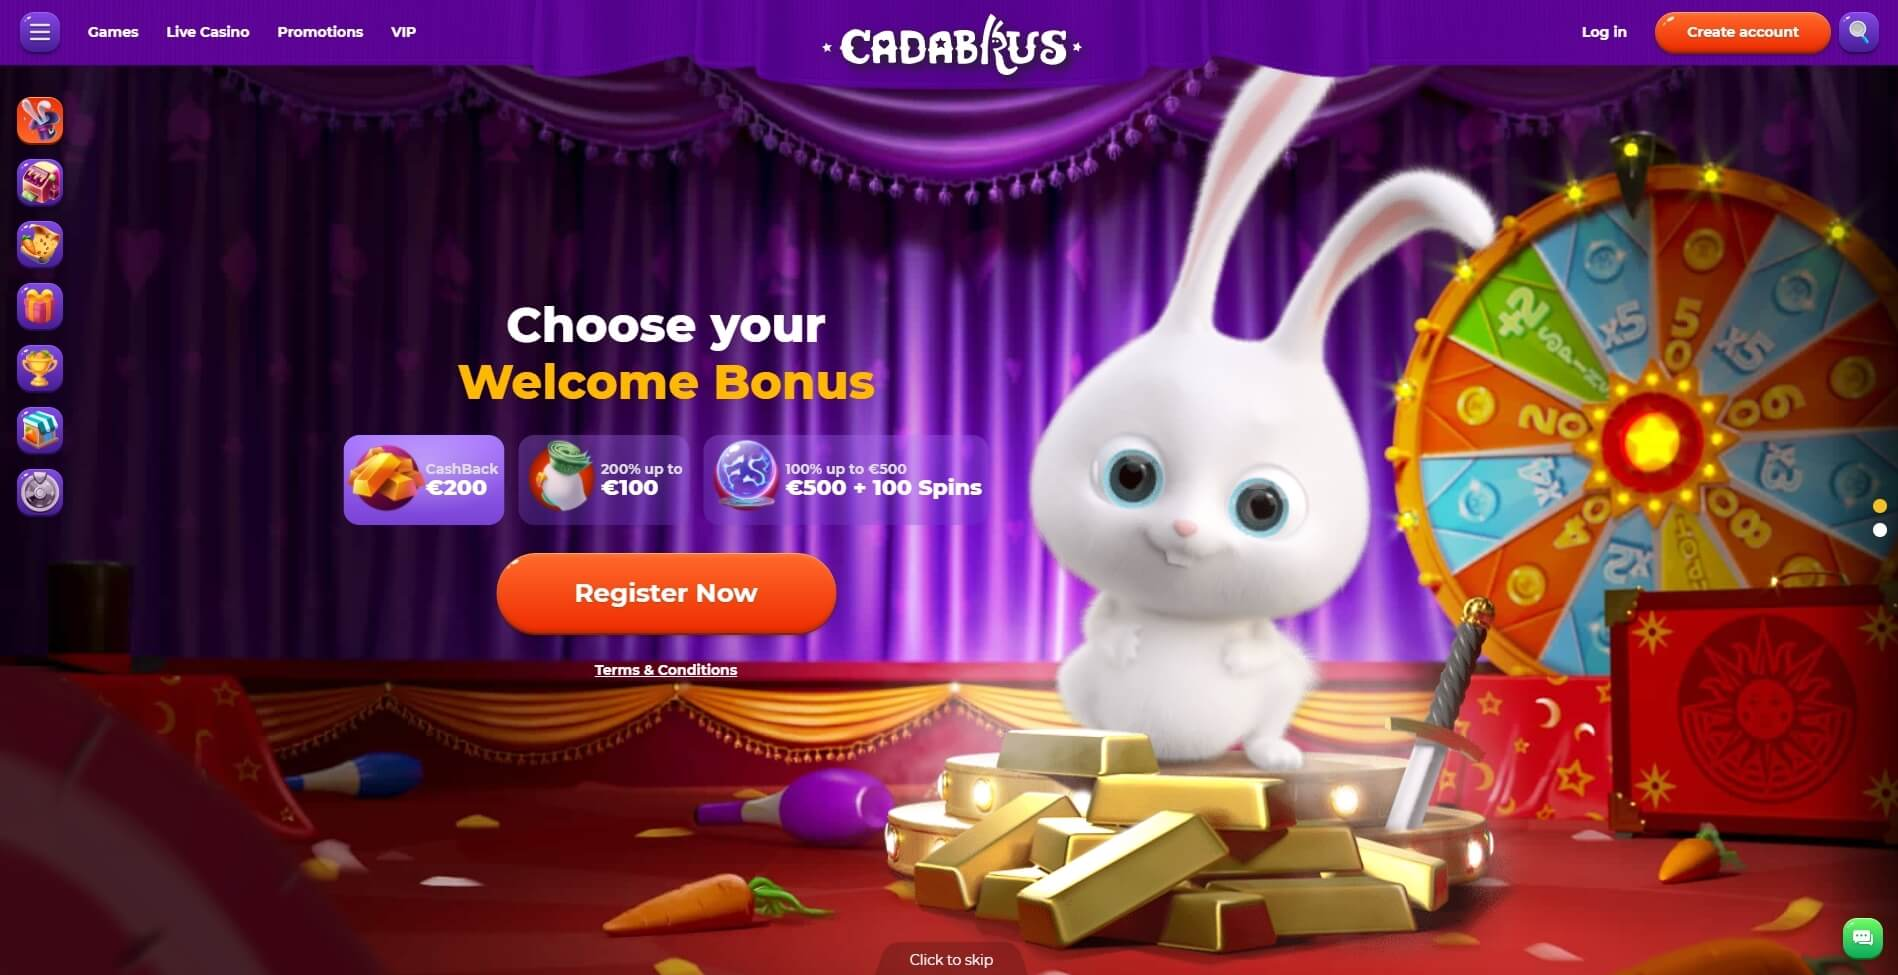 cadabrus casino bonus and review